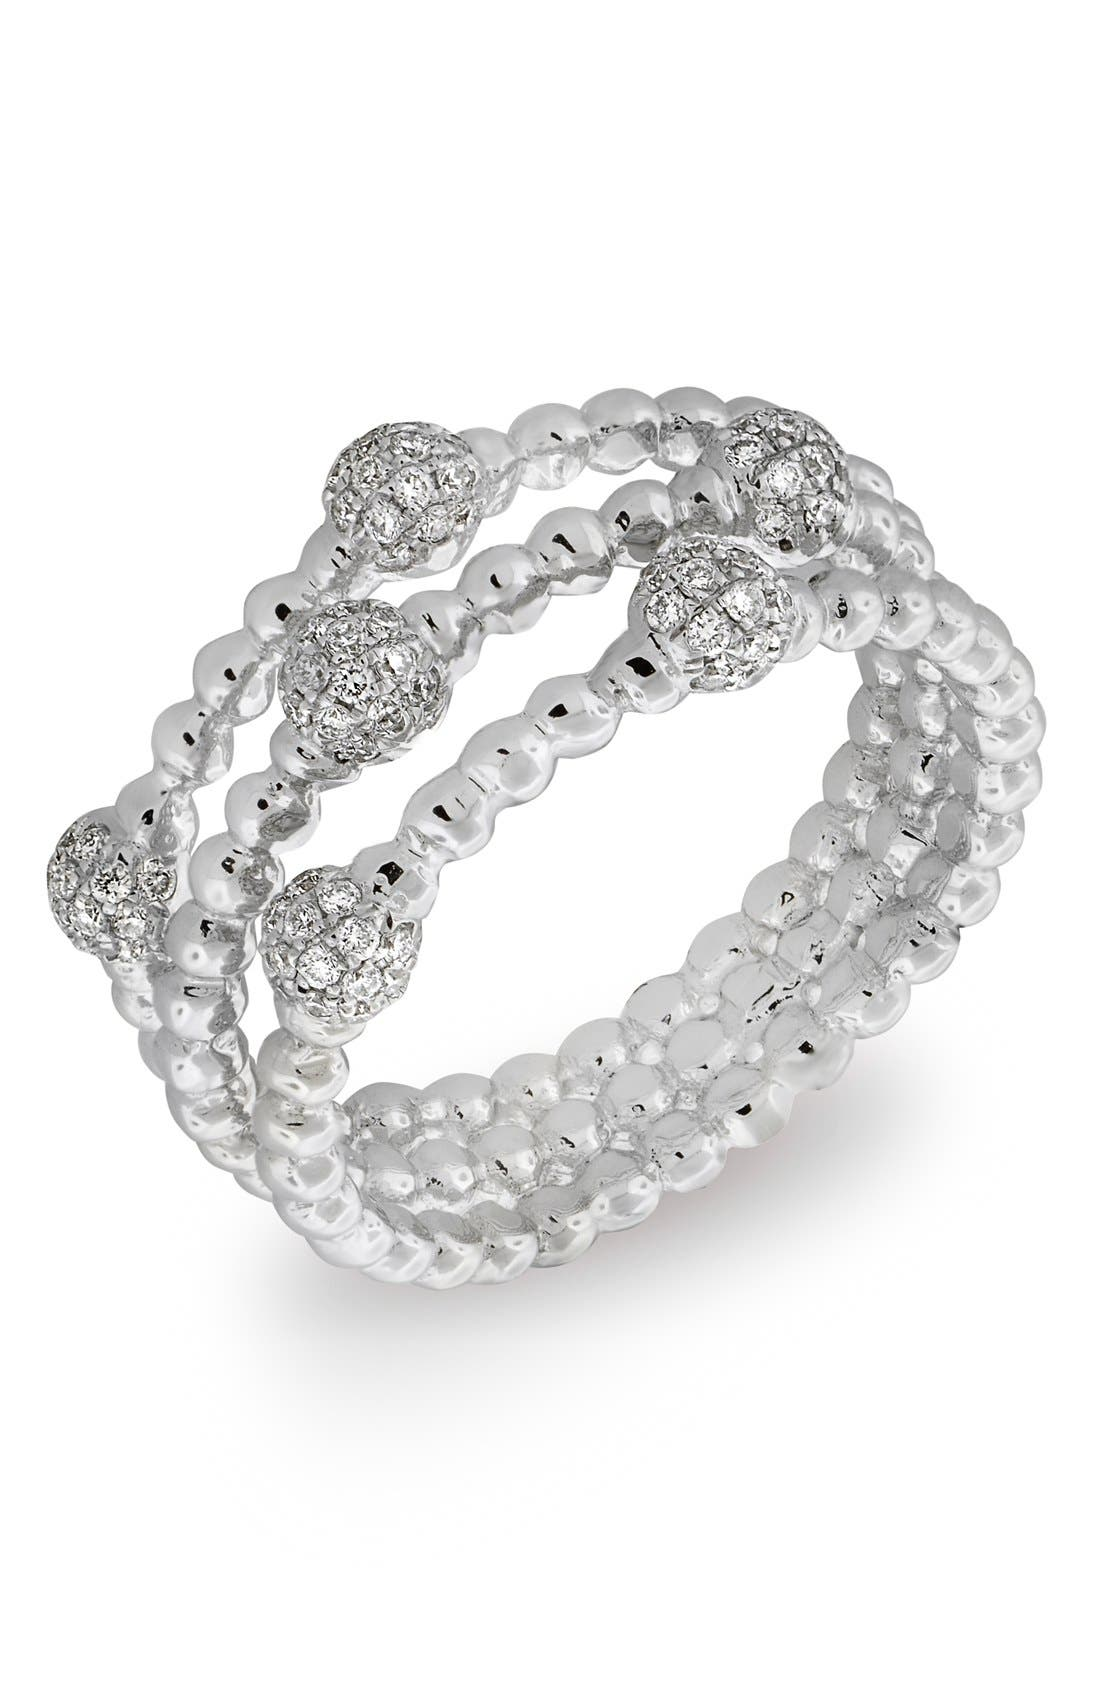 Alternate Image 1 Selected - Bony Levy Pavé Ball Bead Three-Row Diamond Ring (Nordstrom Exclusive)